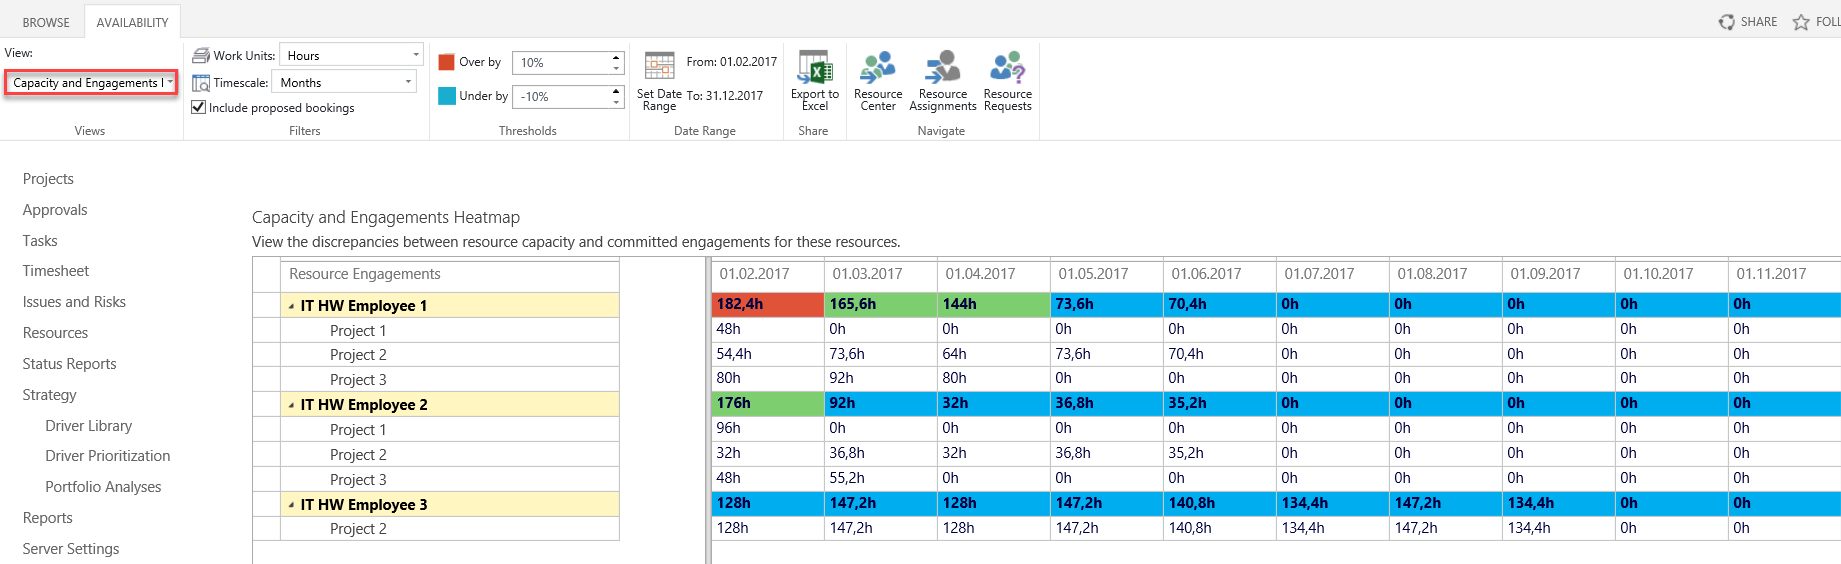 Using Resource Engagements in MS Project 2016 11